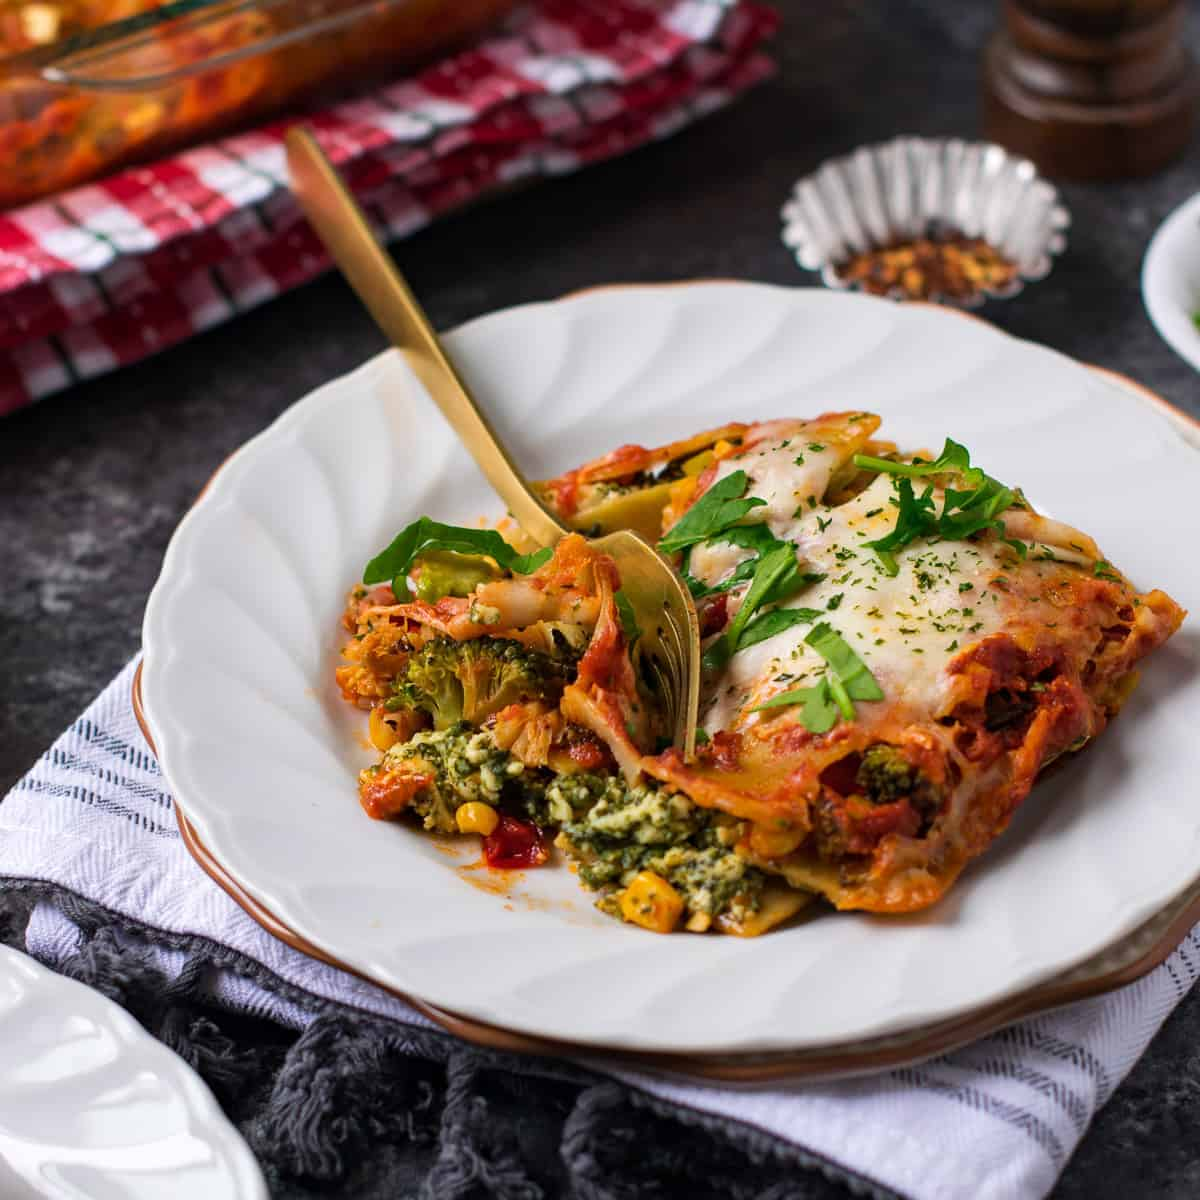 Veg lasagna served on a white plate with a fork